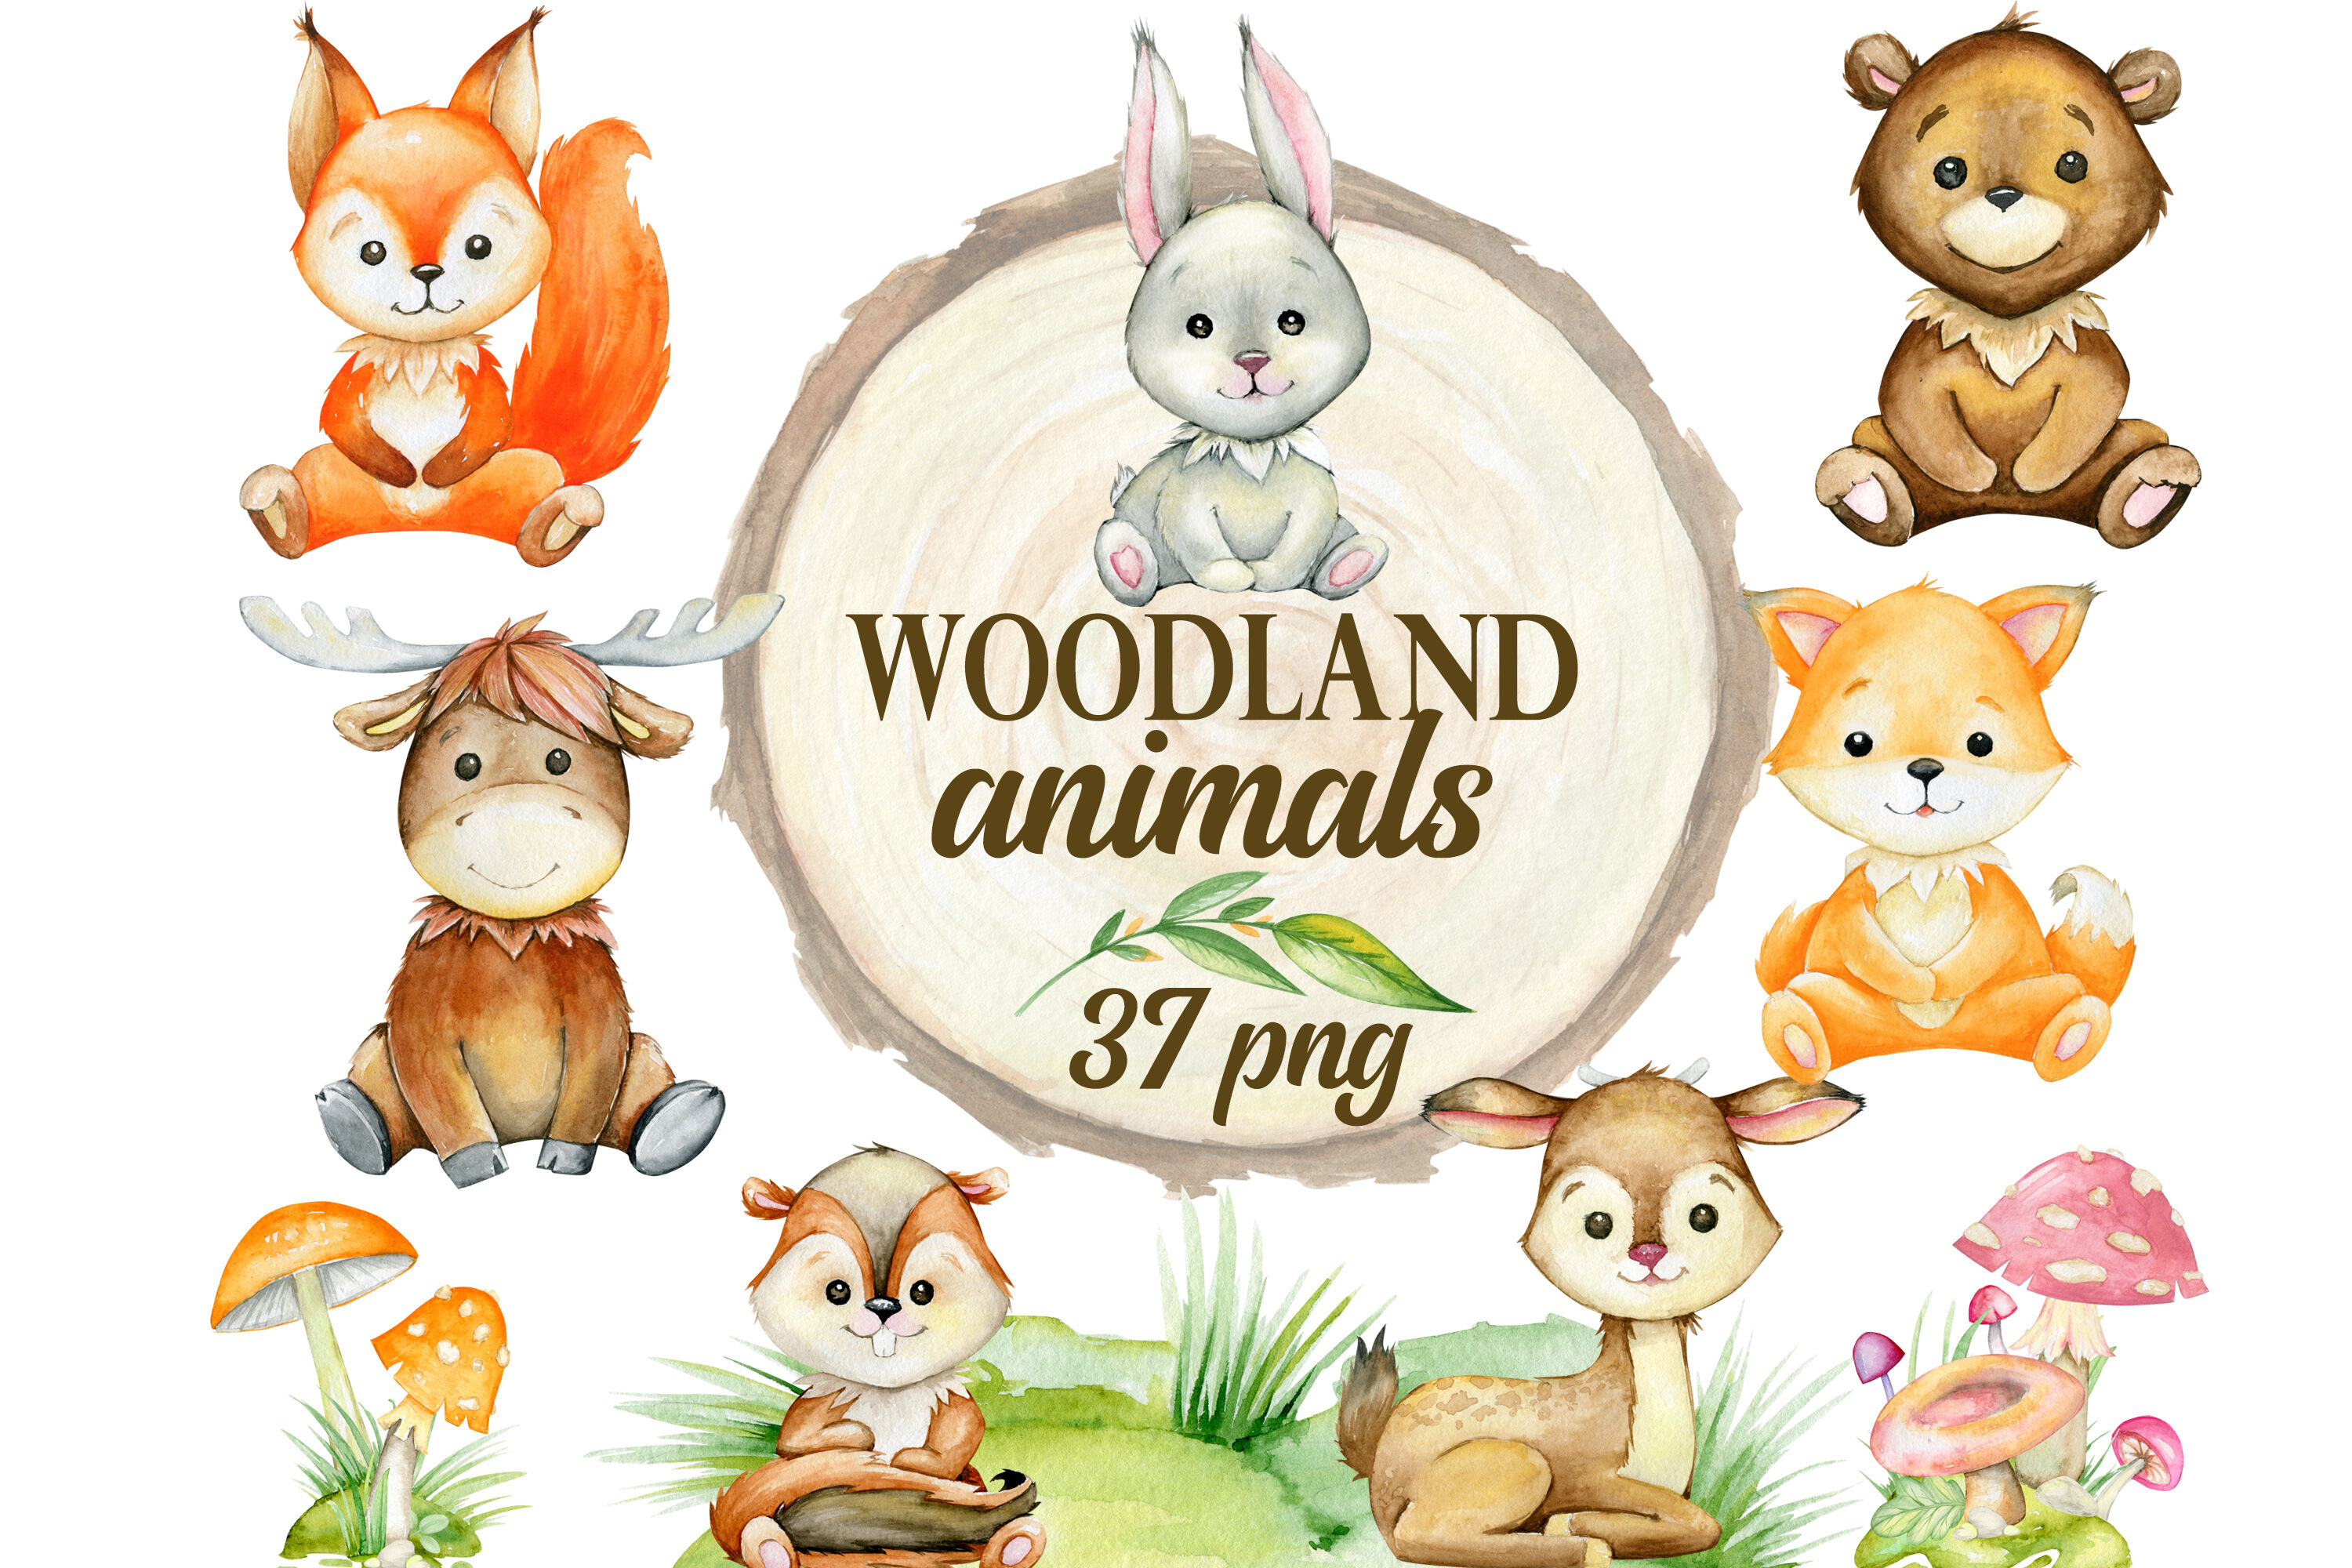 Woodland animals clipart, watercolor forest animals, nursery ...